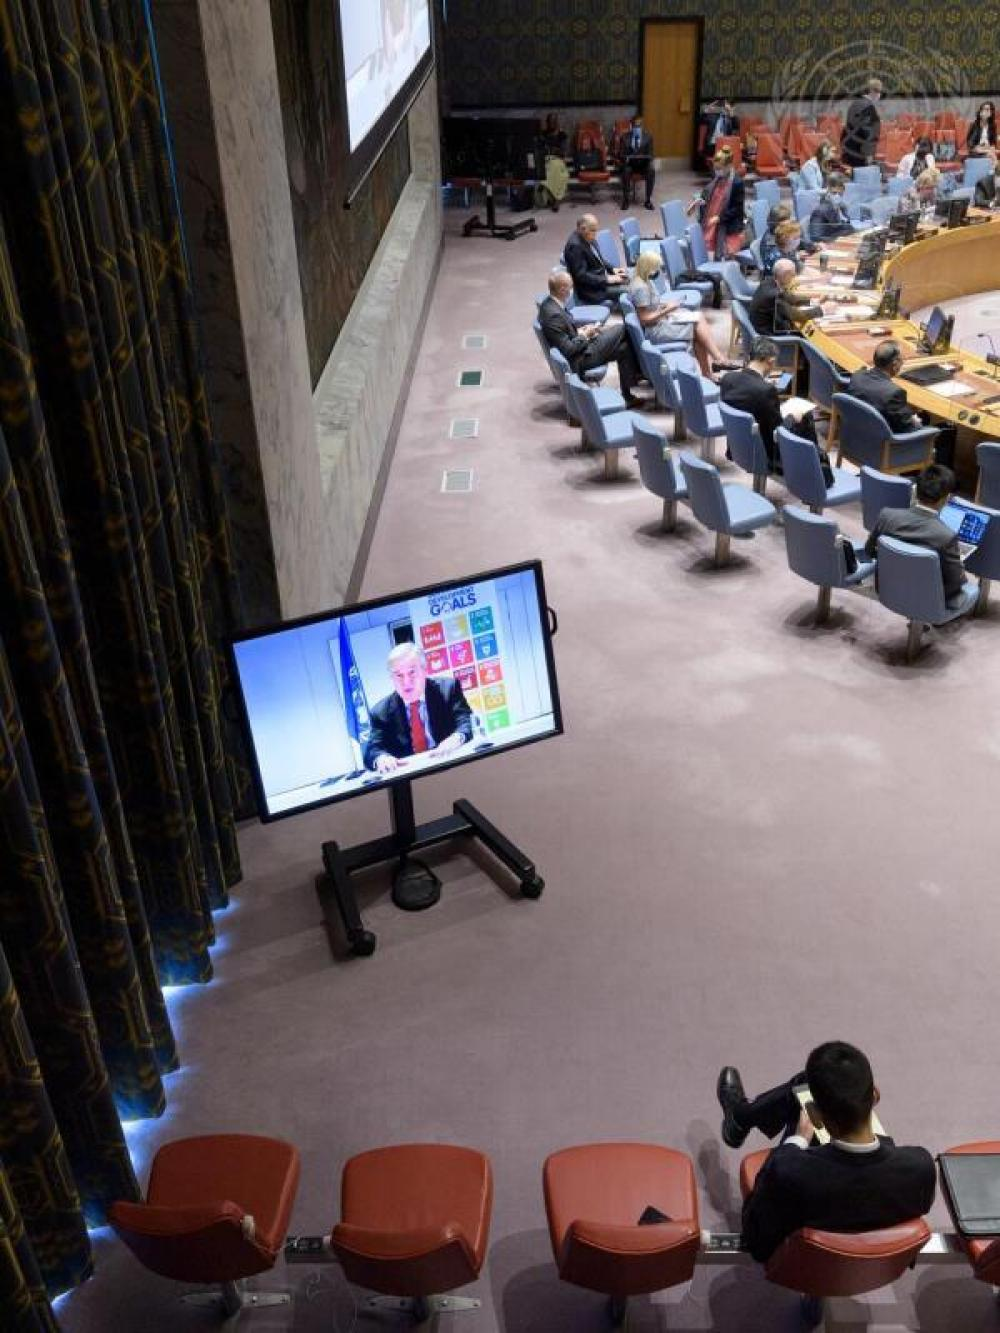 In Images: The day at UN (Jun 23, 2021)